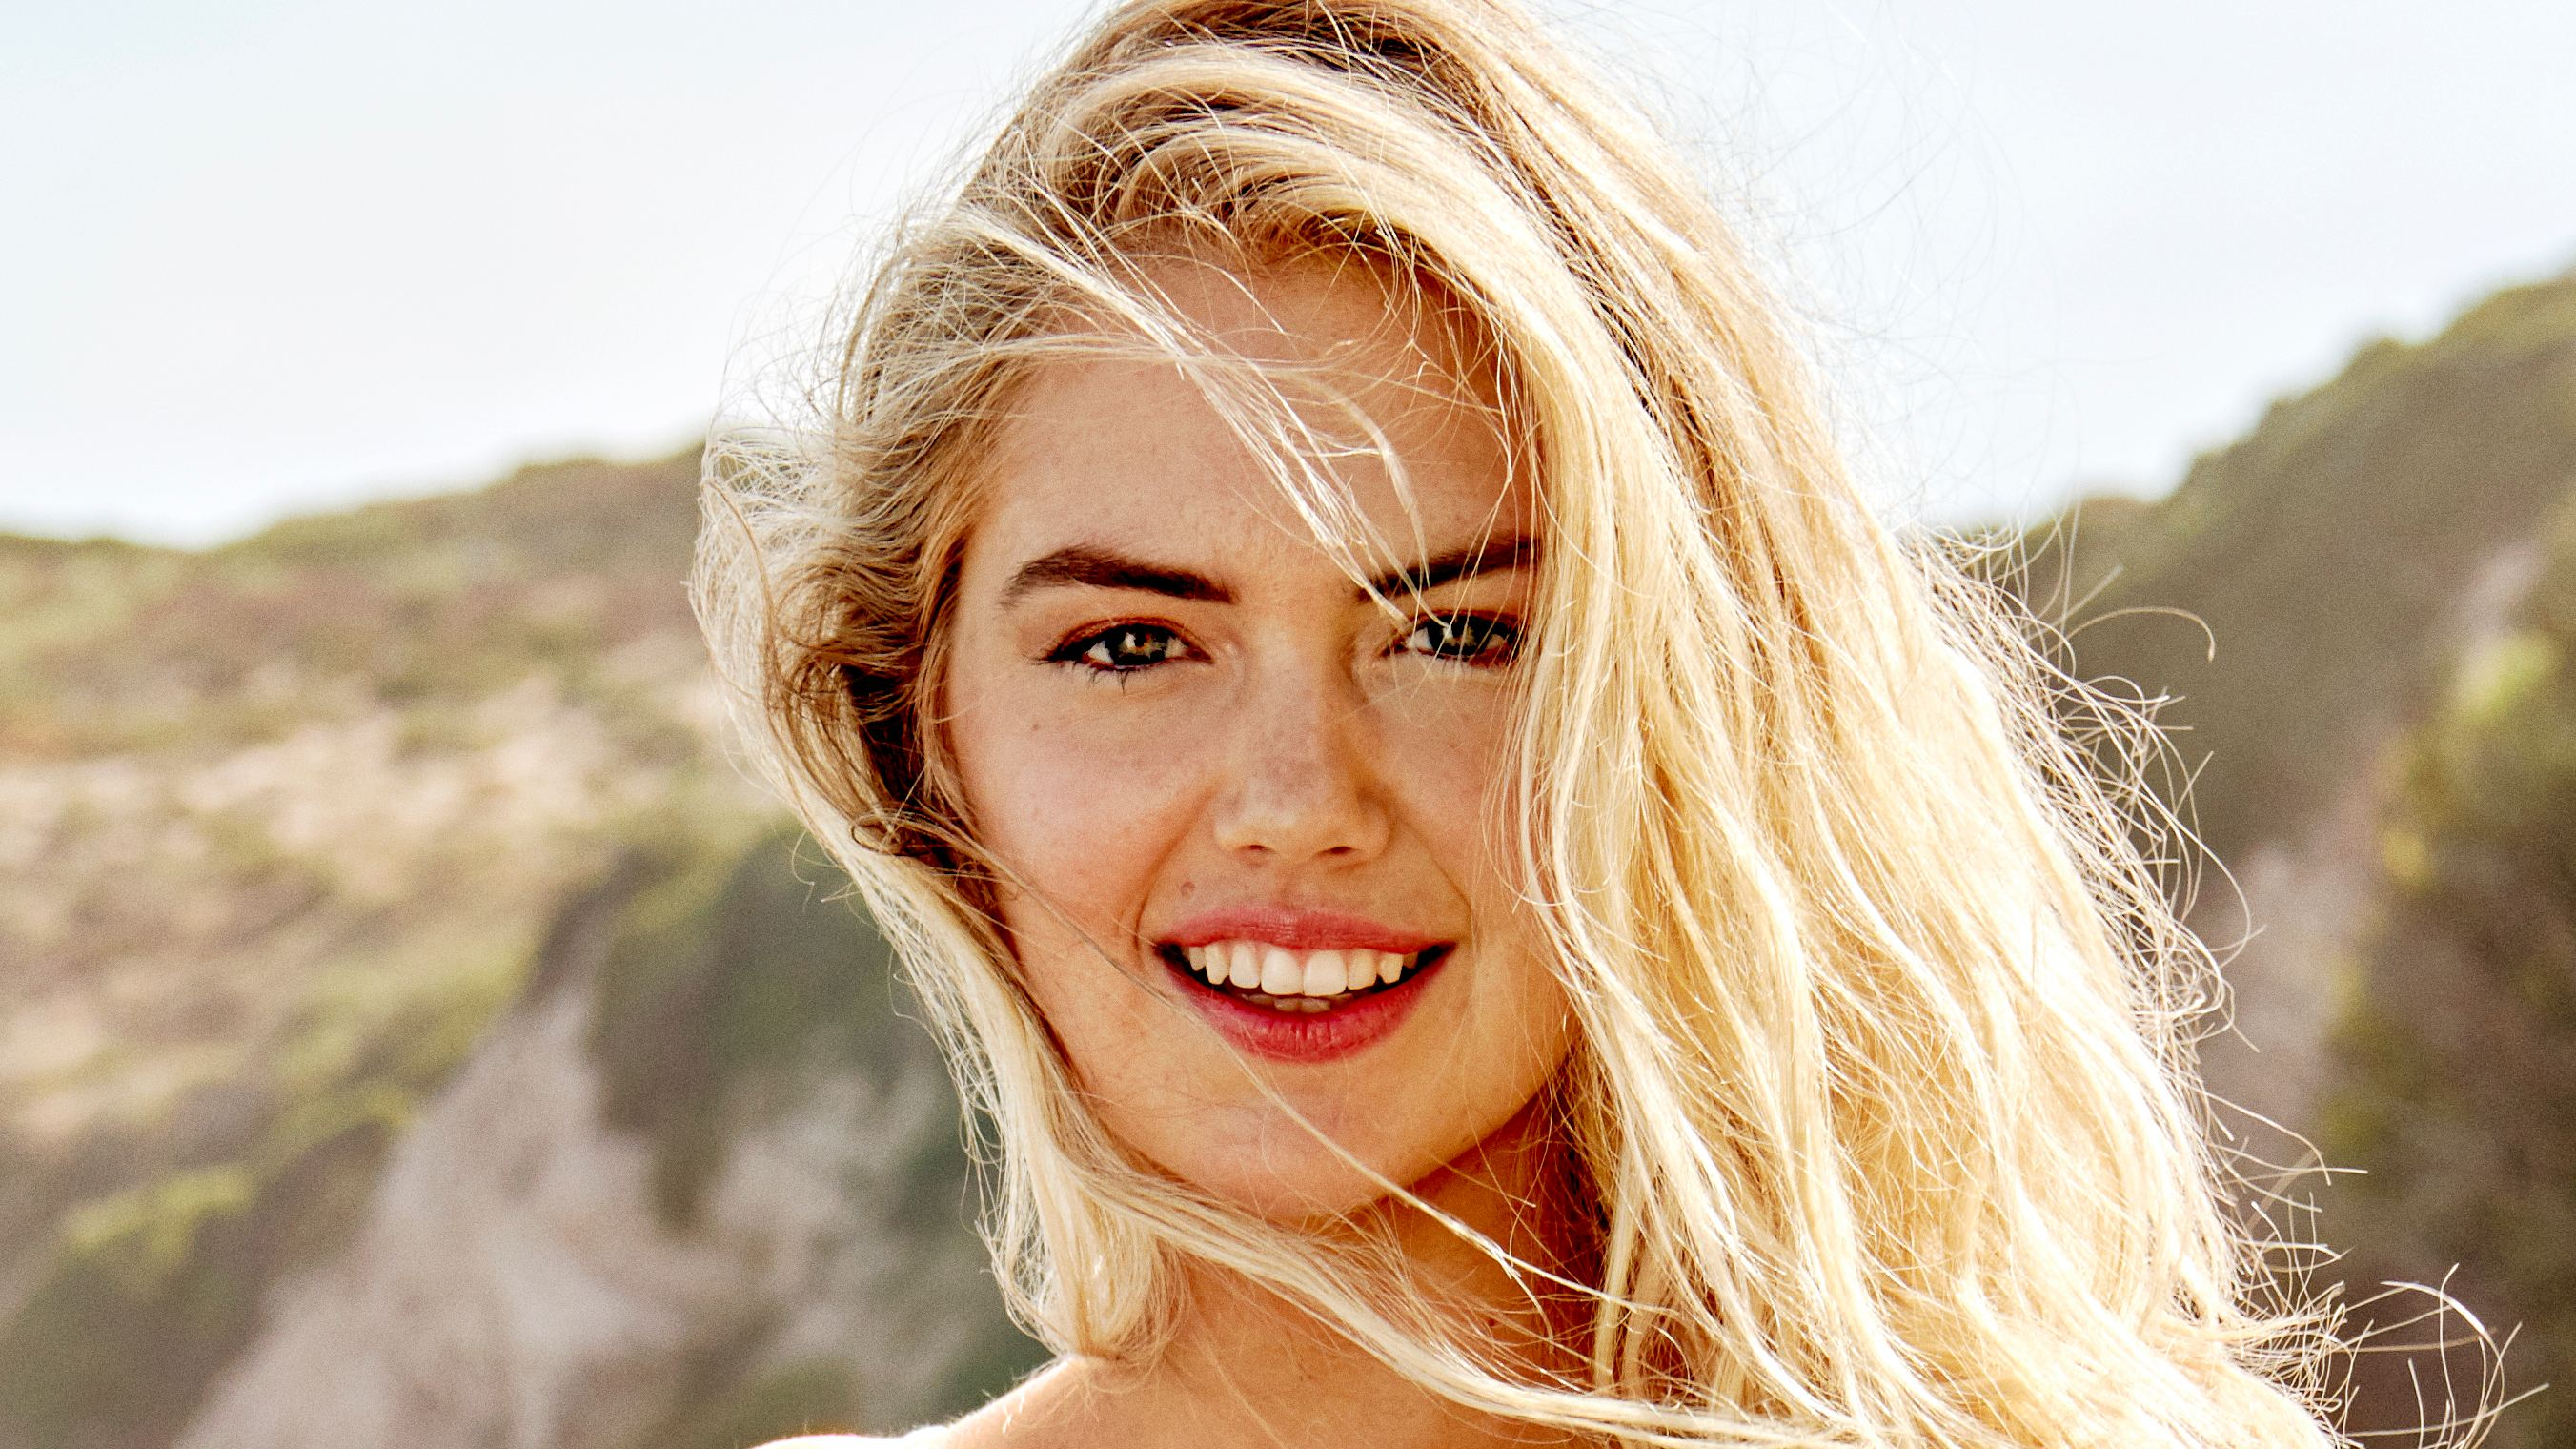 Kate Upton Stuns in Unretouched Photos, Shares How Giving Birth Changed Her Workout Routine